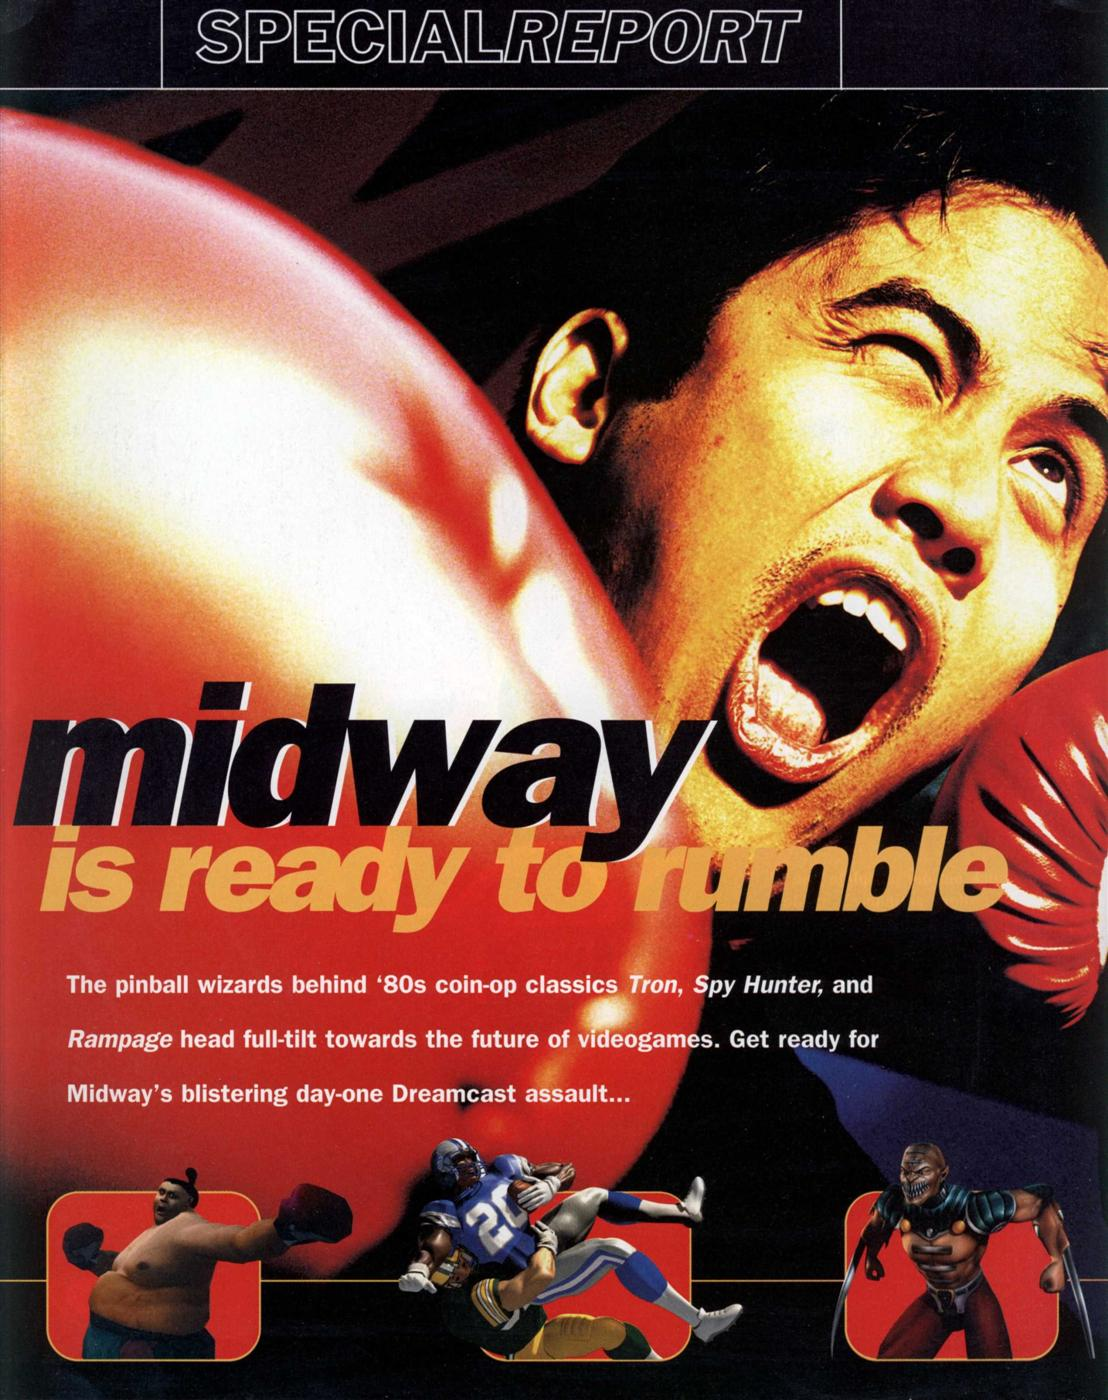 midway_is_ready_to_rumble-0